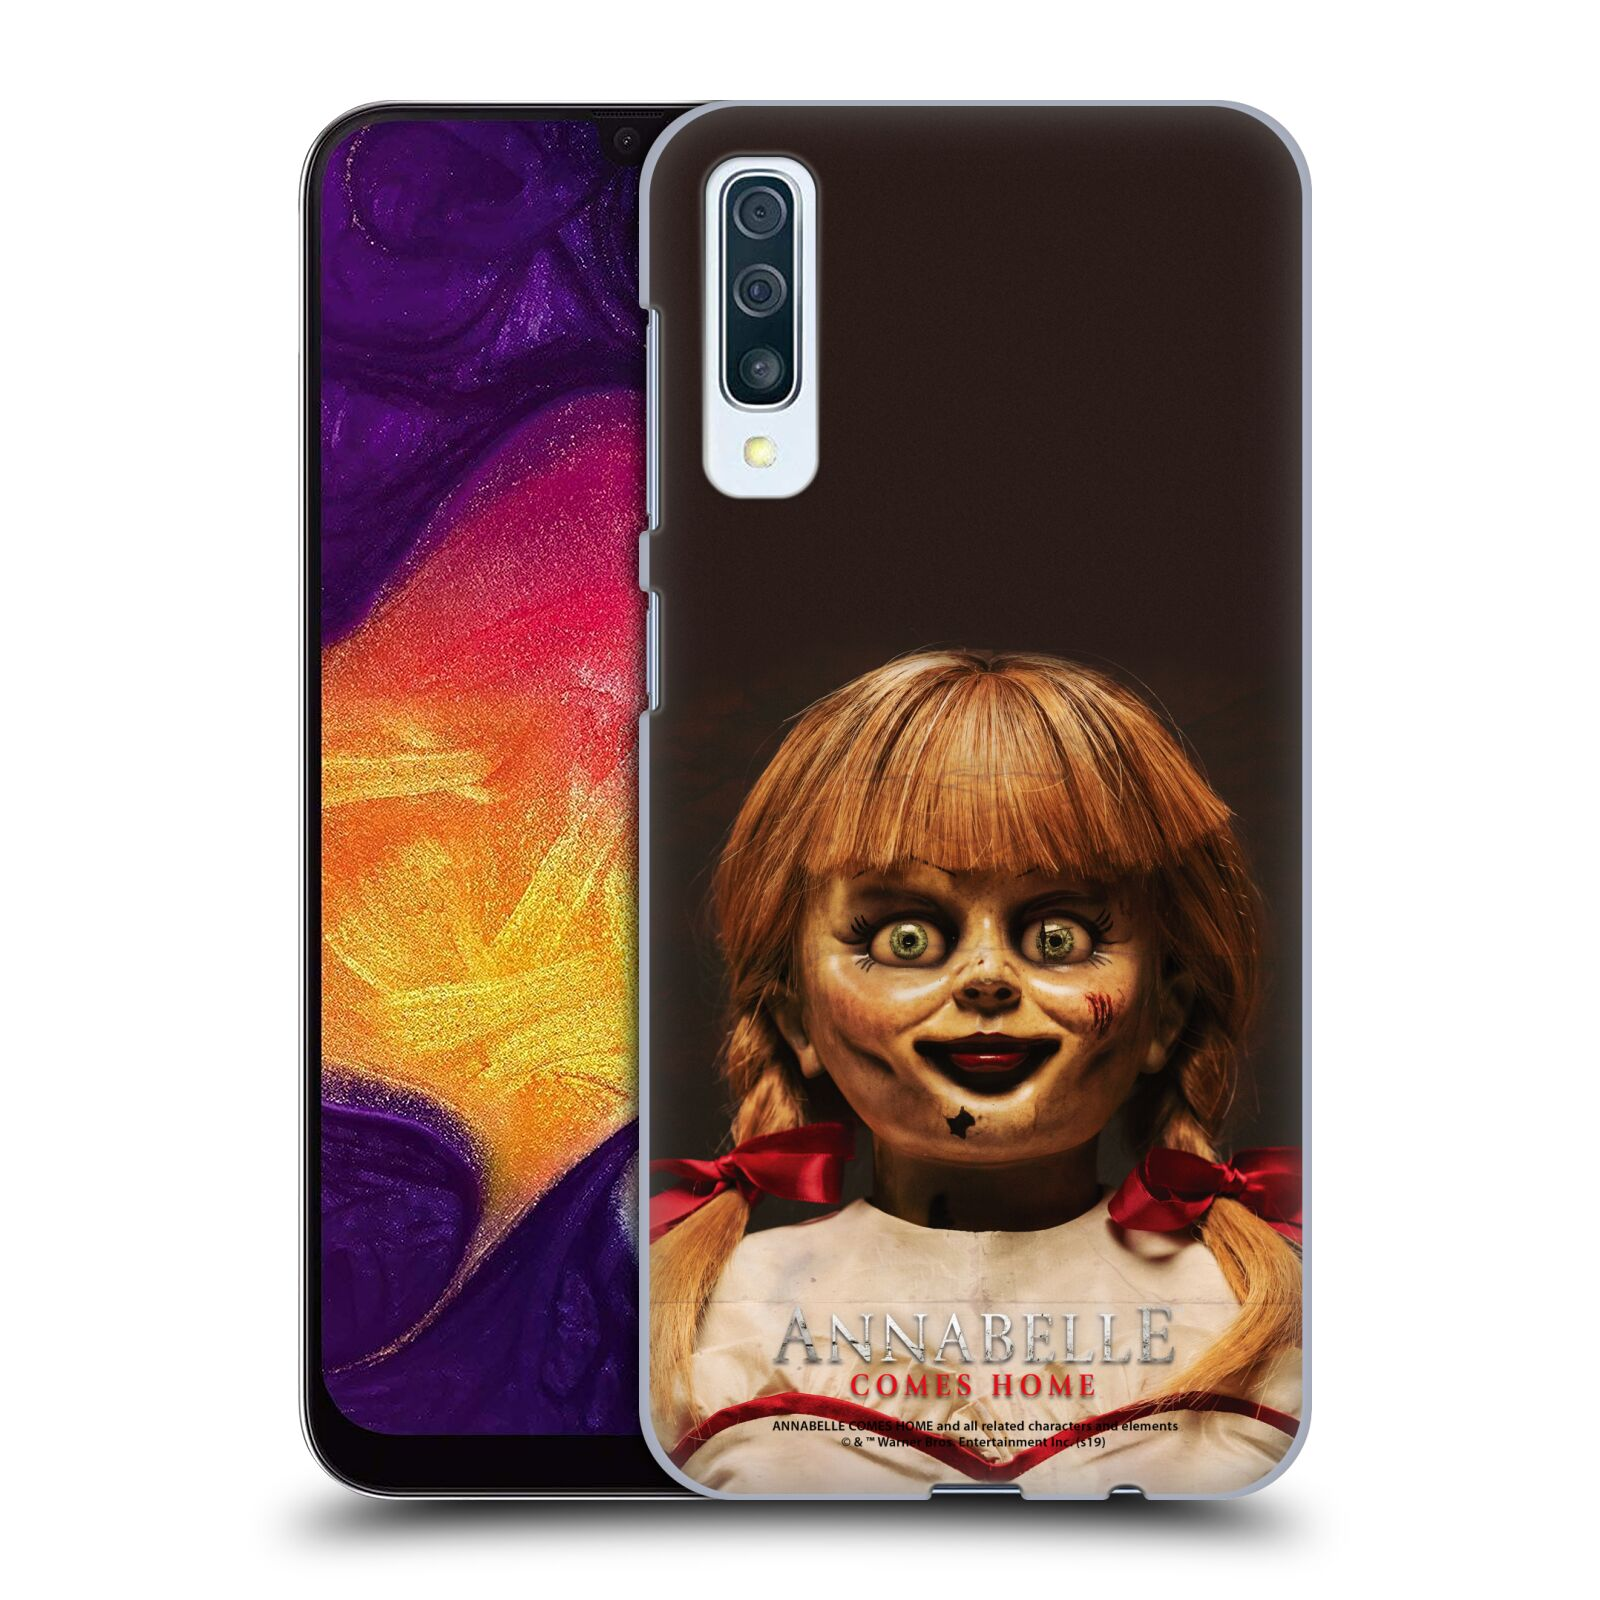 Official Annabelle Comes Home Doll Photography Portrait Case for Samsung Galaxy A50s (2019)